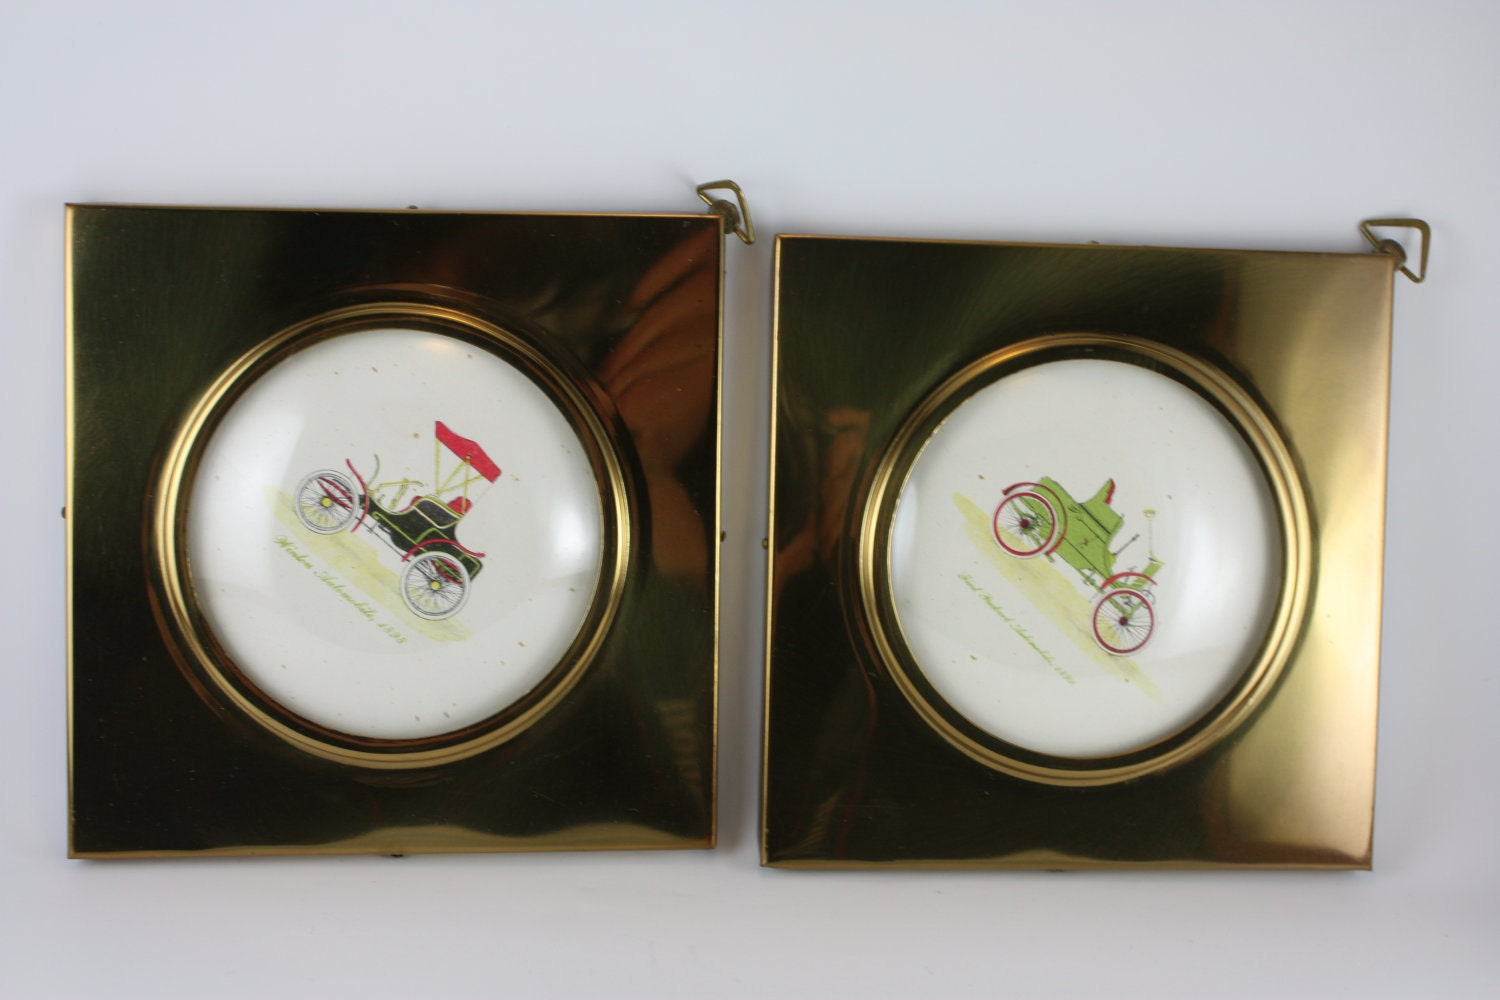 Vintage Car Wall Decor : Vintage cars wall hanging home decor car by oregonroguevintage